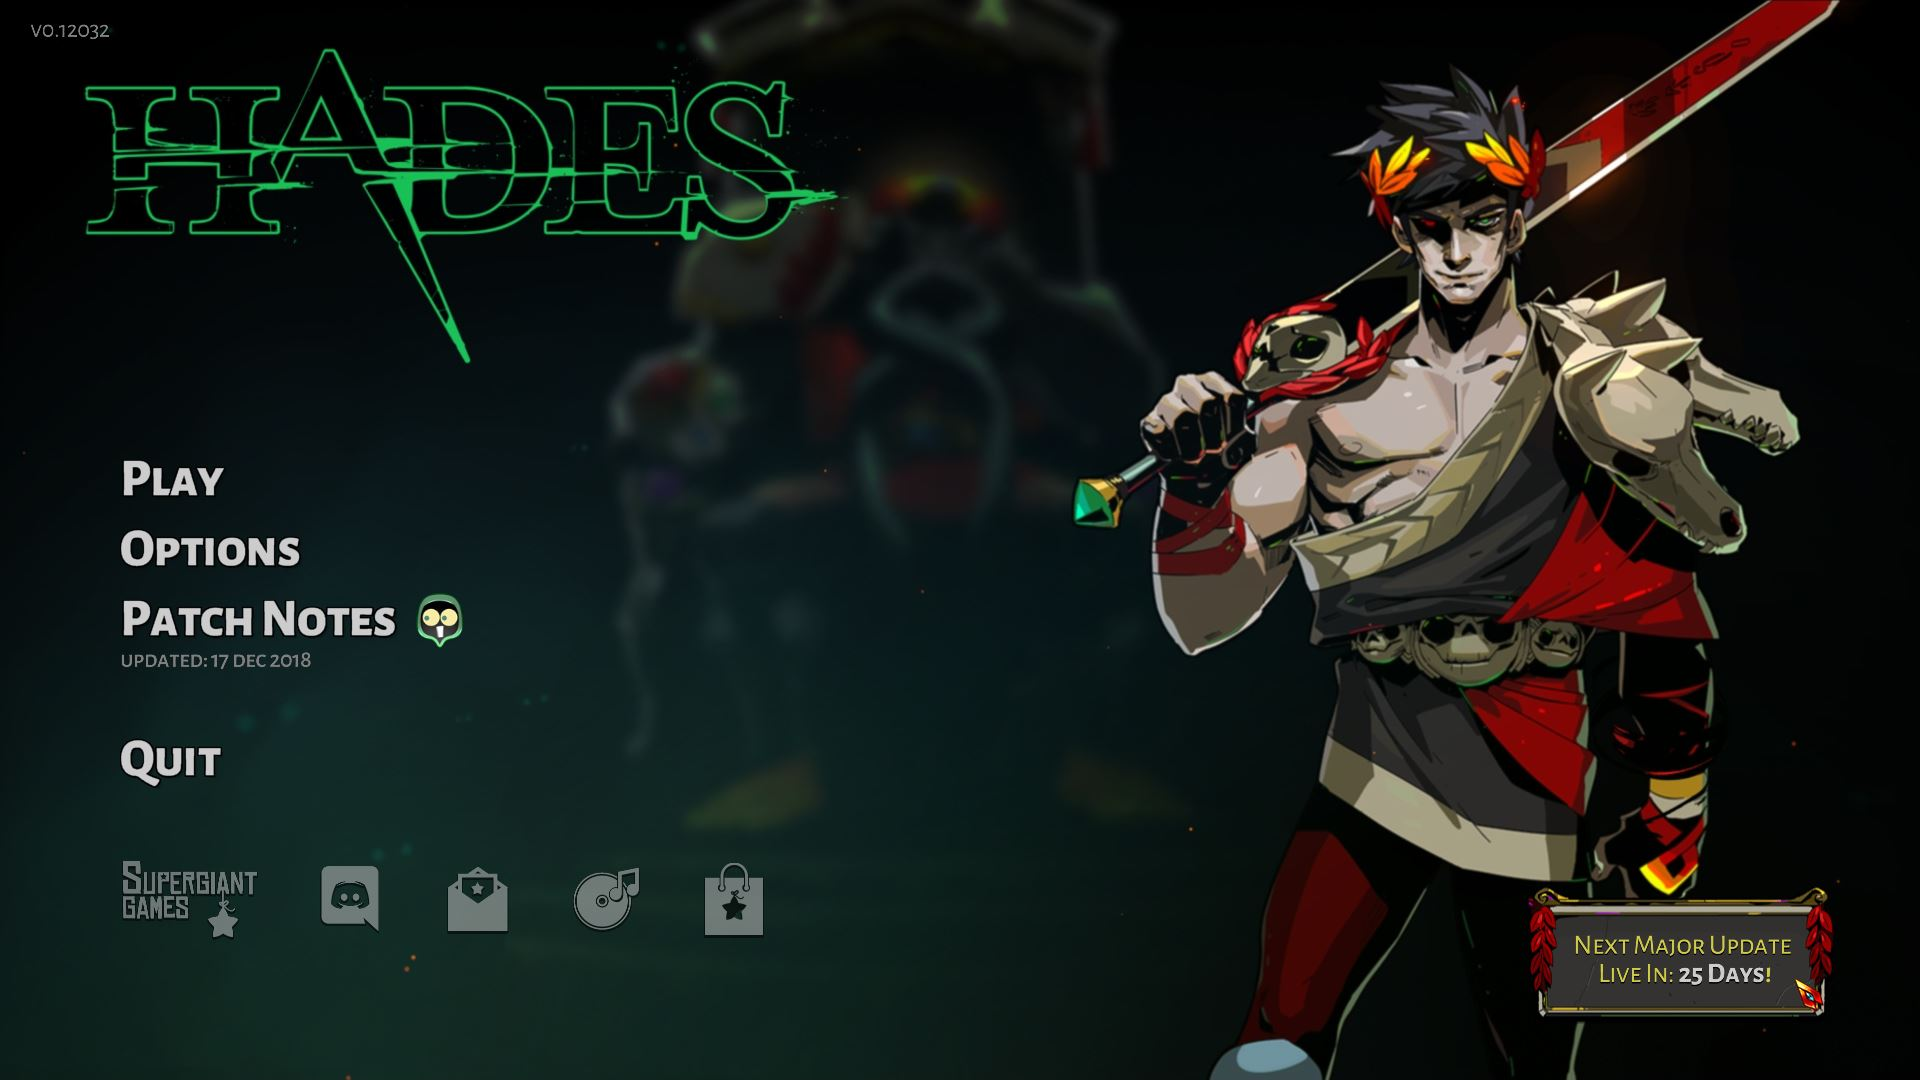 Next major update for Hades